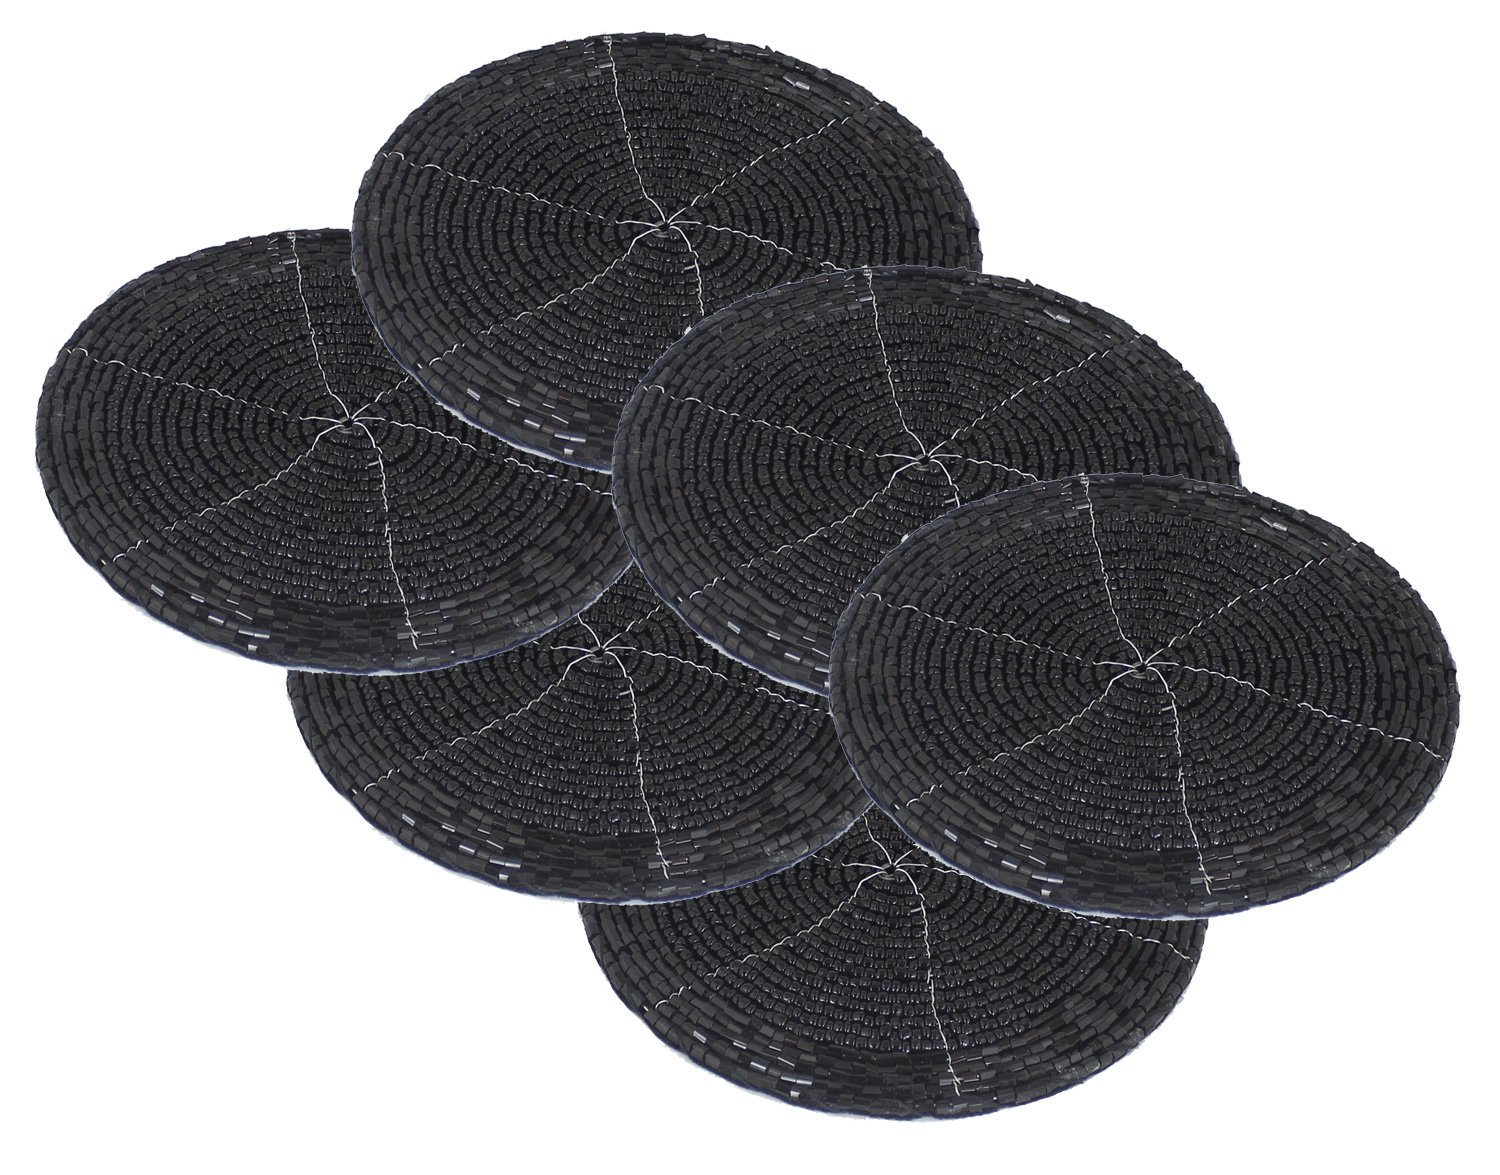 Set of 6 - Handmade Glass Beaded Coaster Dining Set Black - Coaster for Drinks - Dia 4 Inches